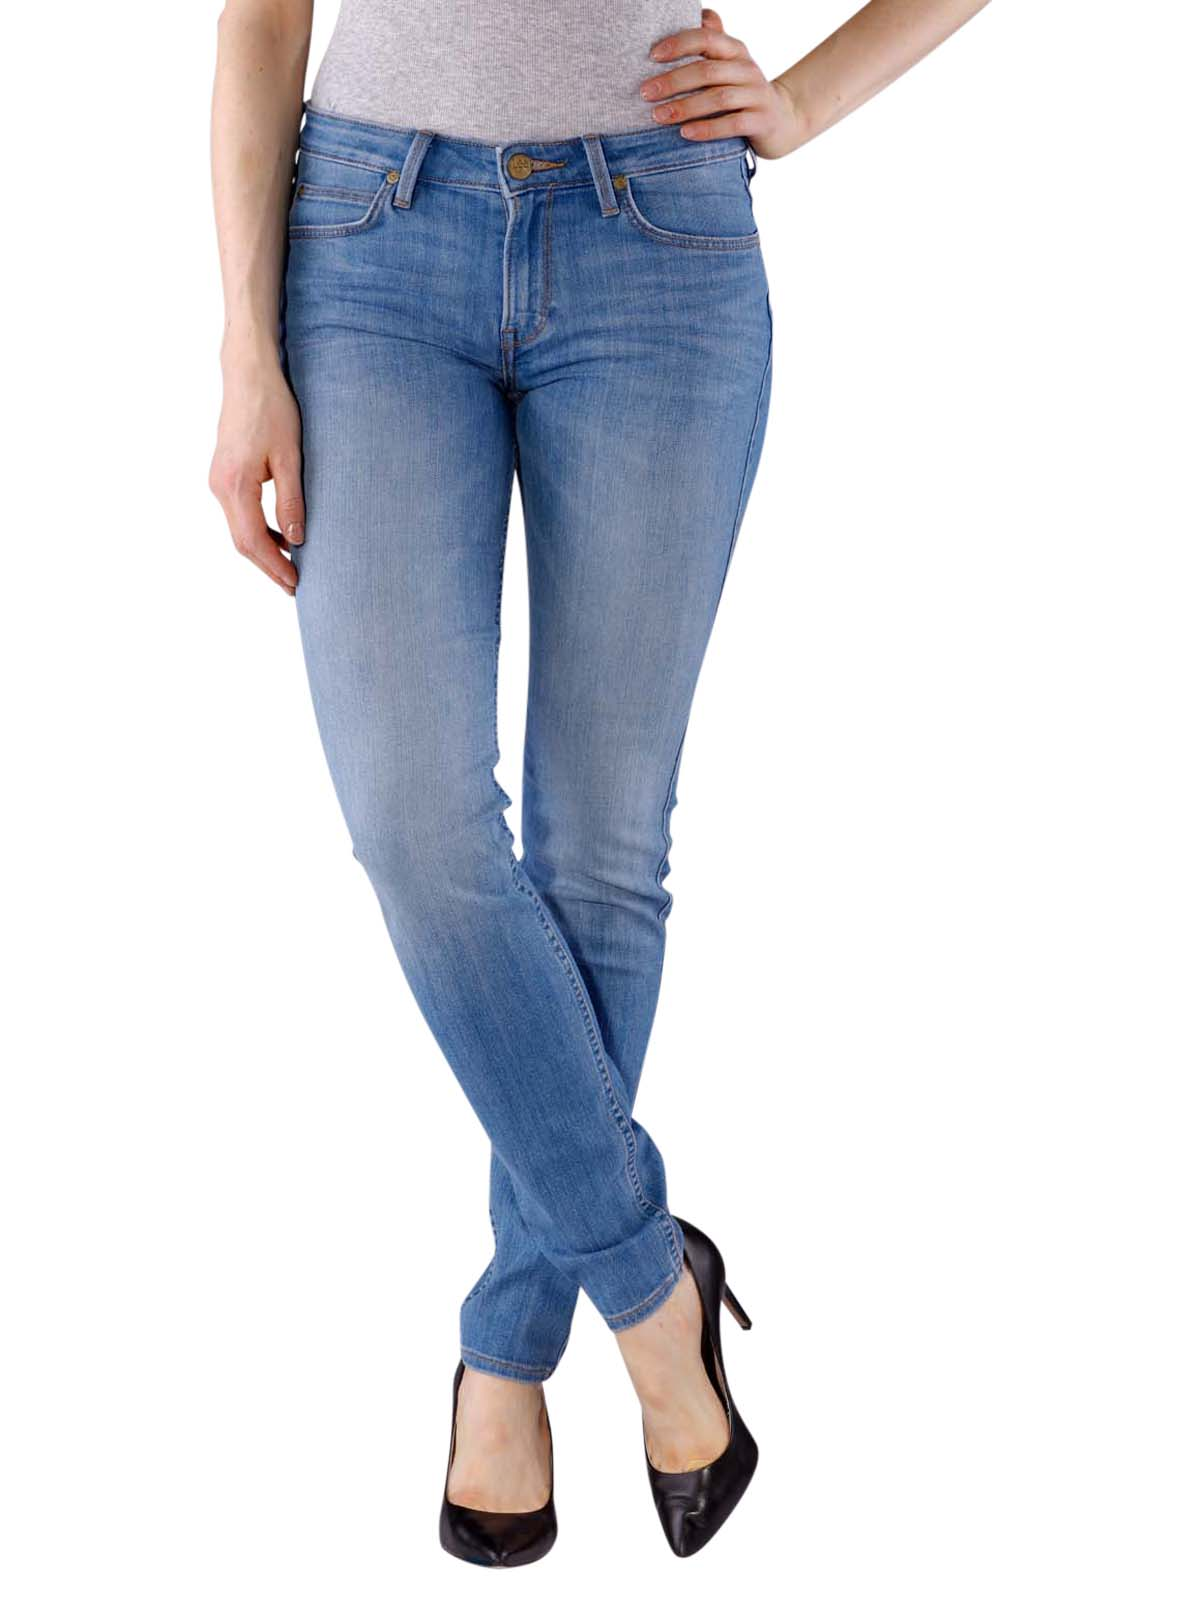 new images of official site official store Lee Scarlett Jeans bright blue